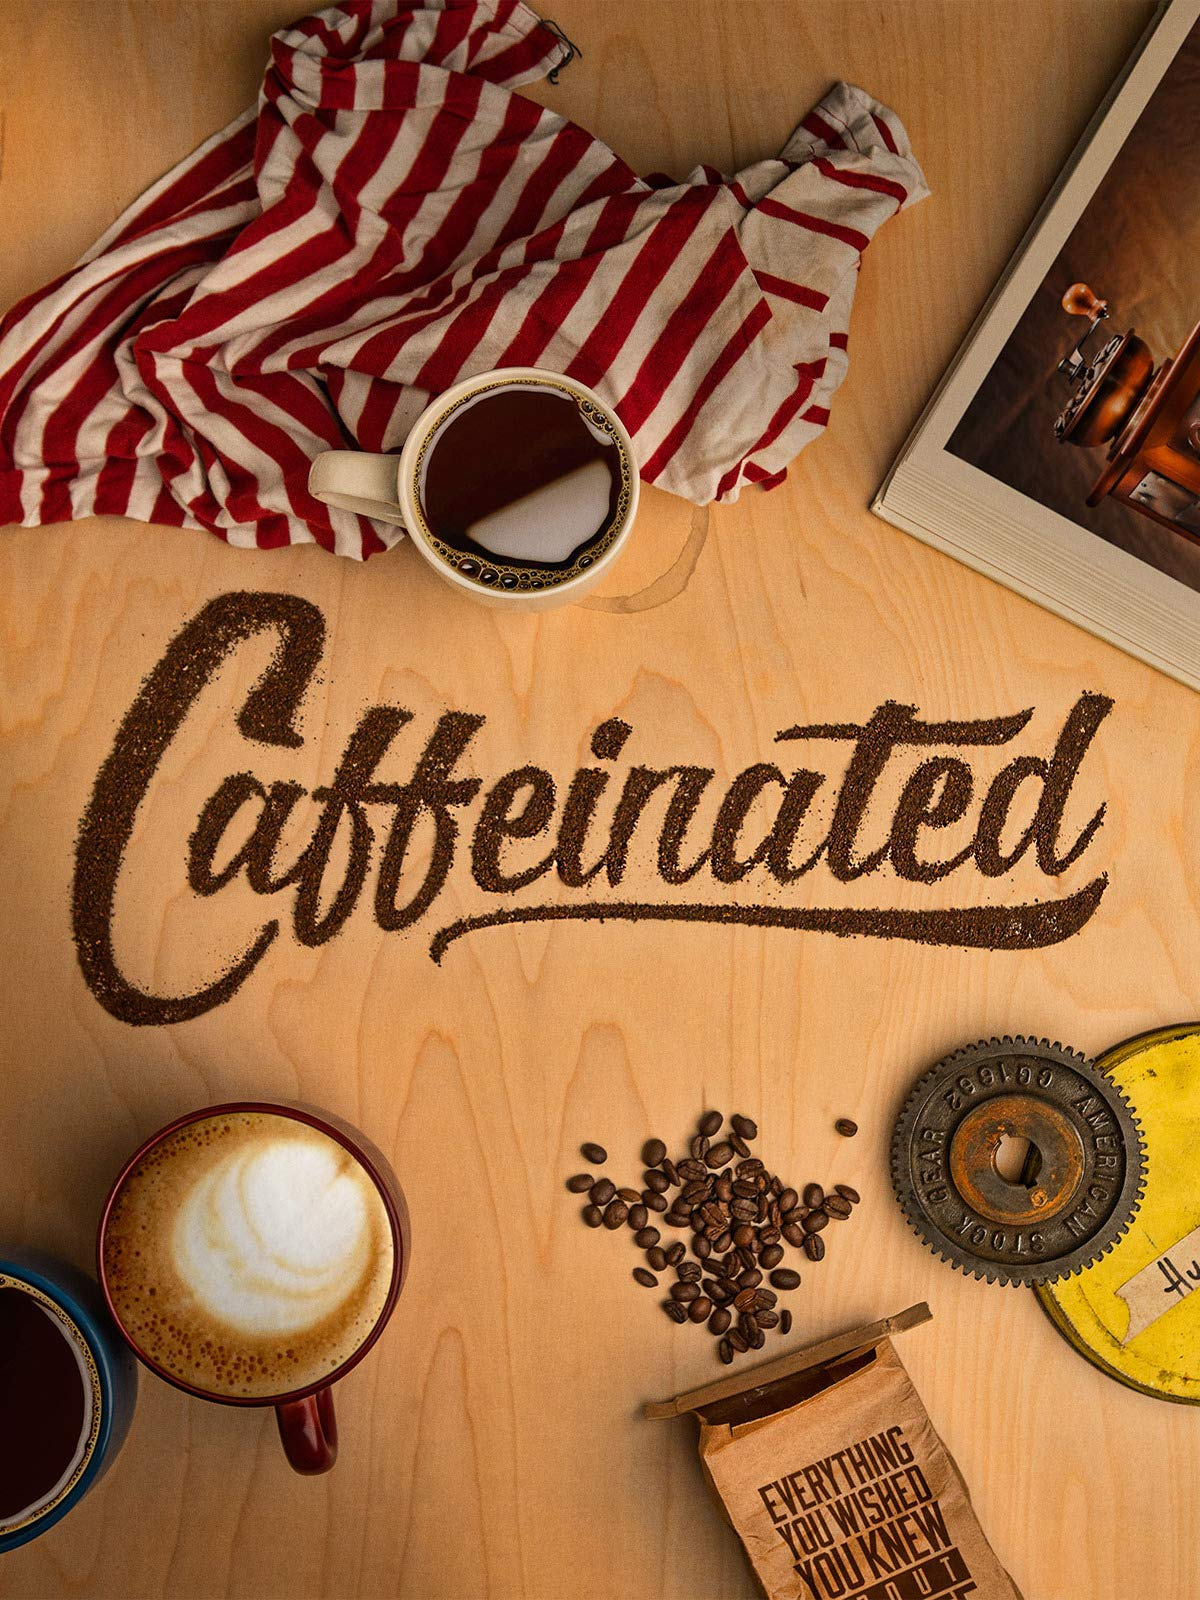 Caffeinated (English Subtitled)